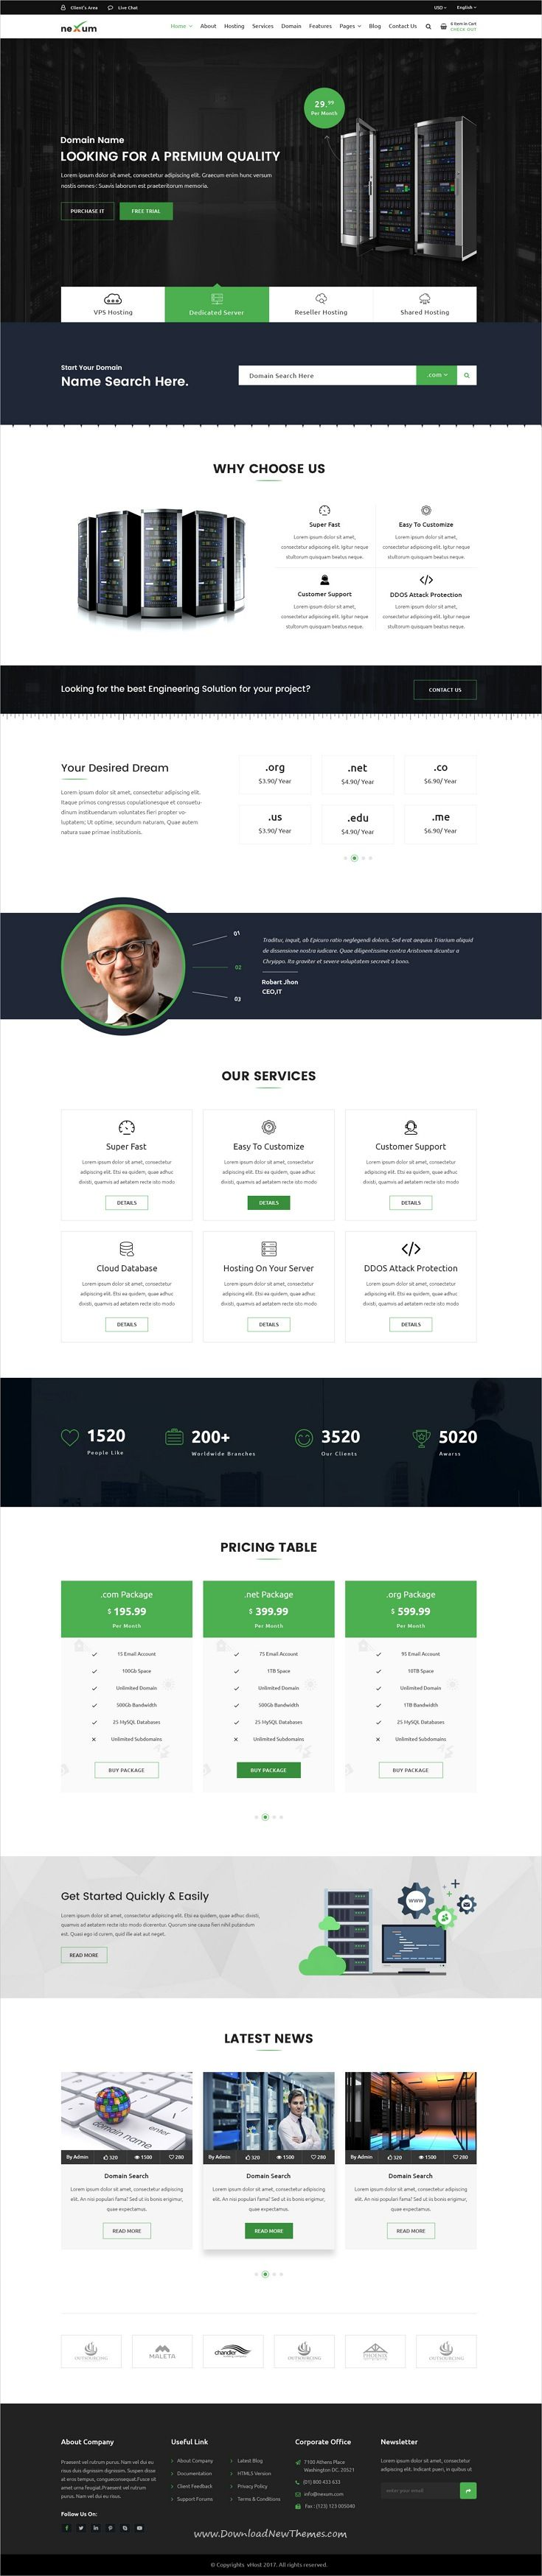 nexum host hosting and domain psd template psd templates